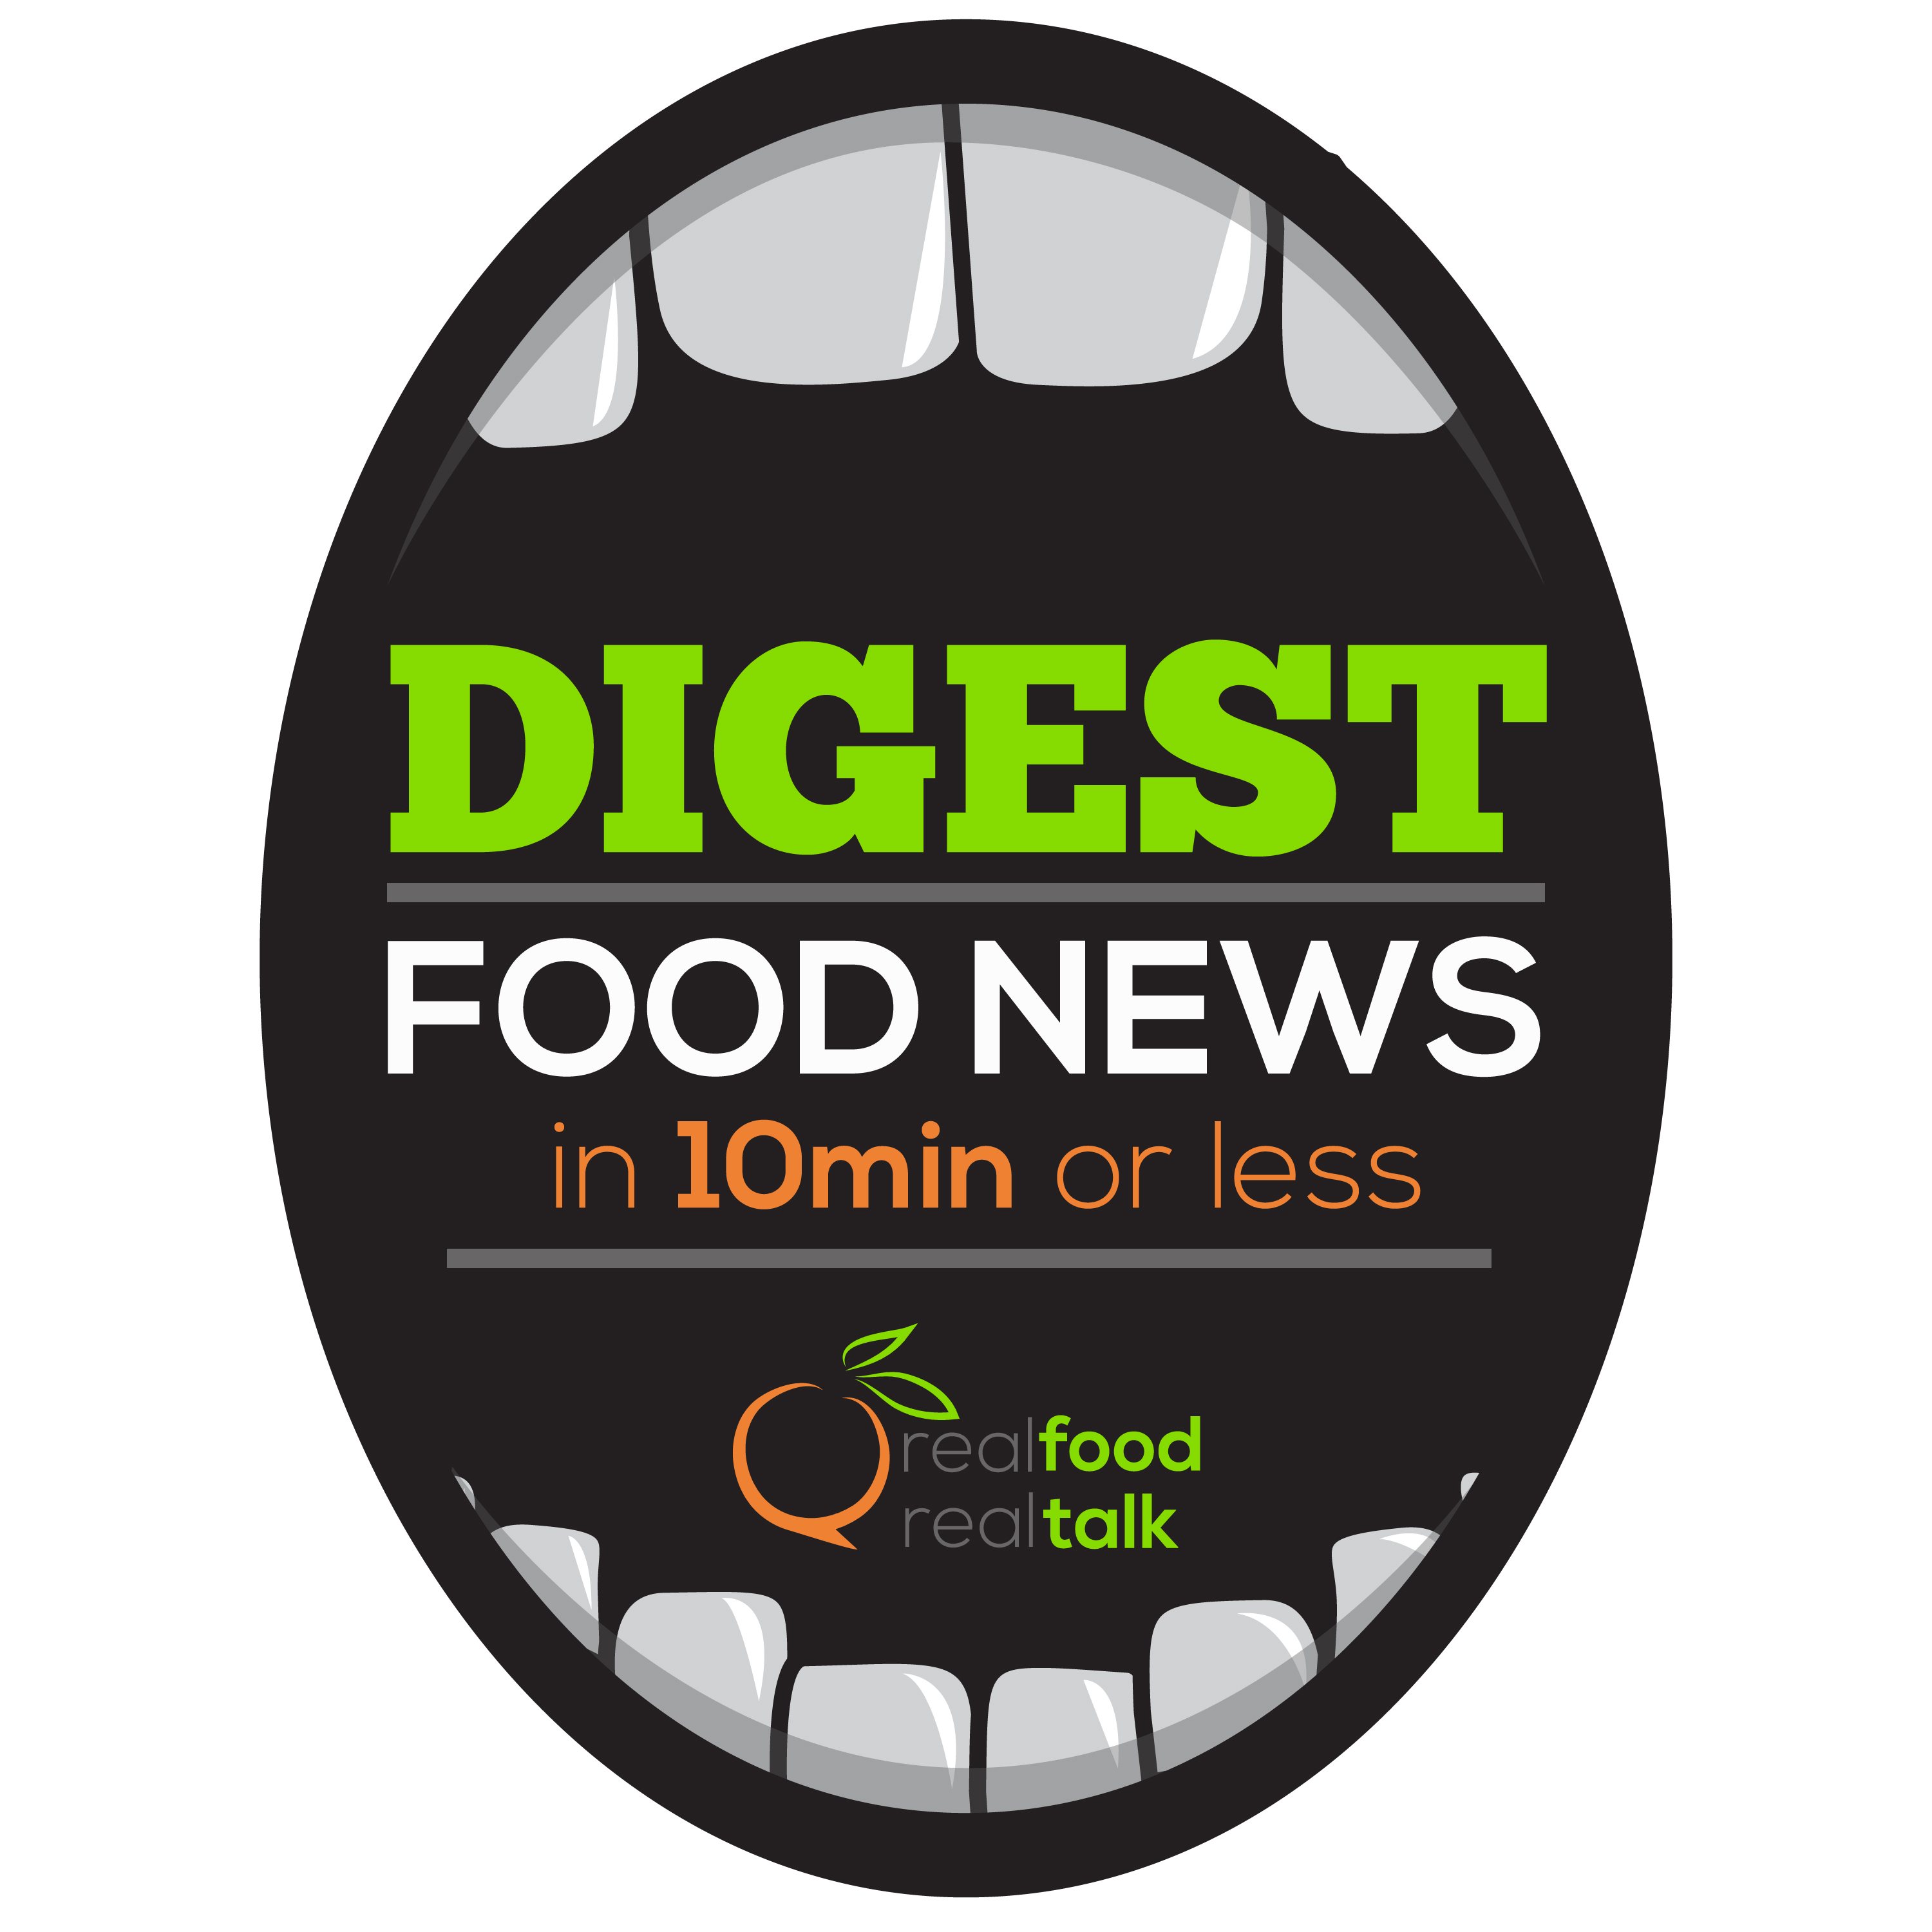 DIGEST - Food News in 10min or less